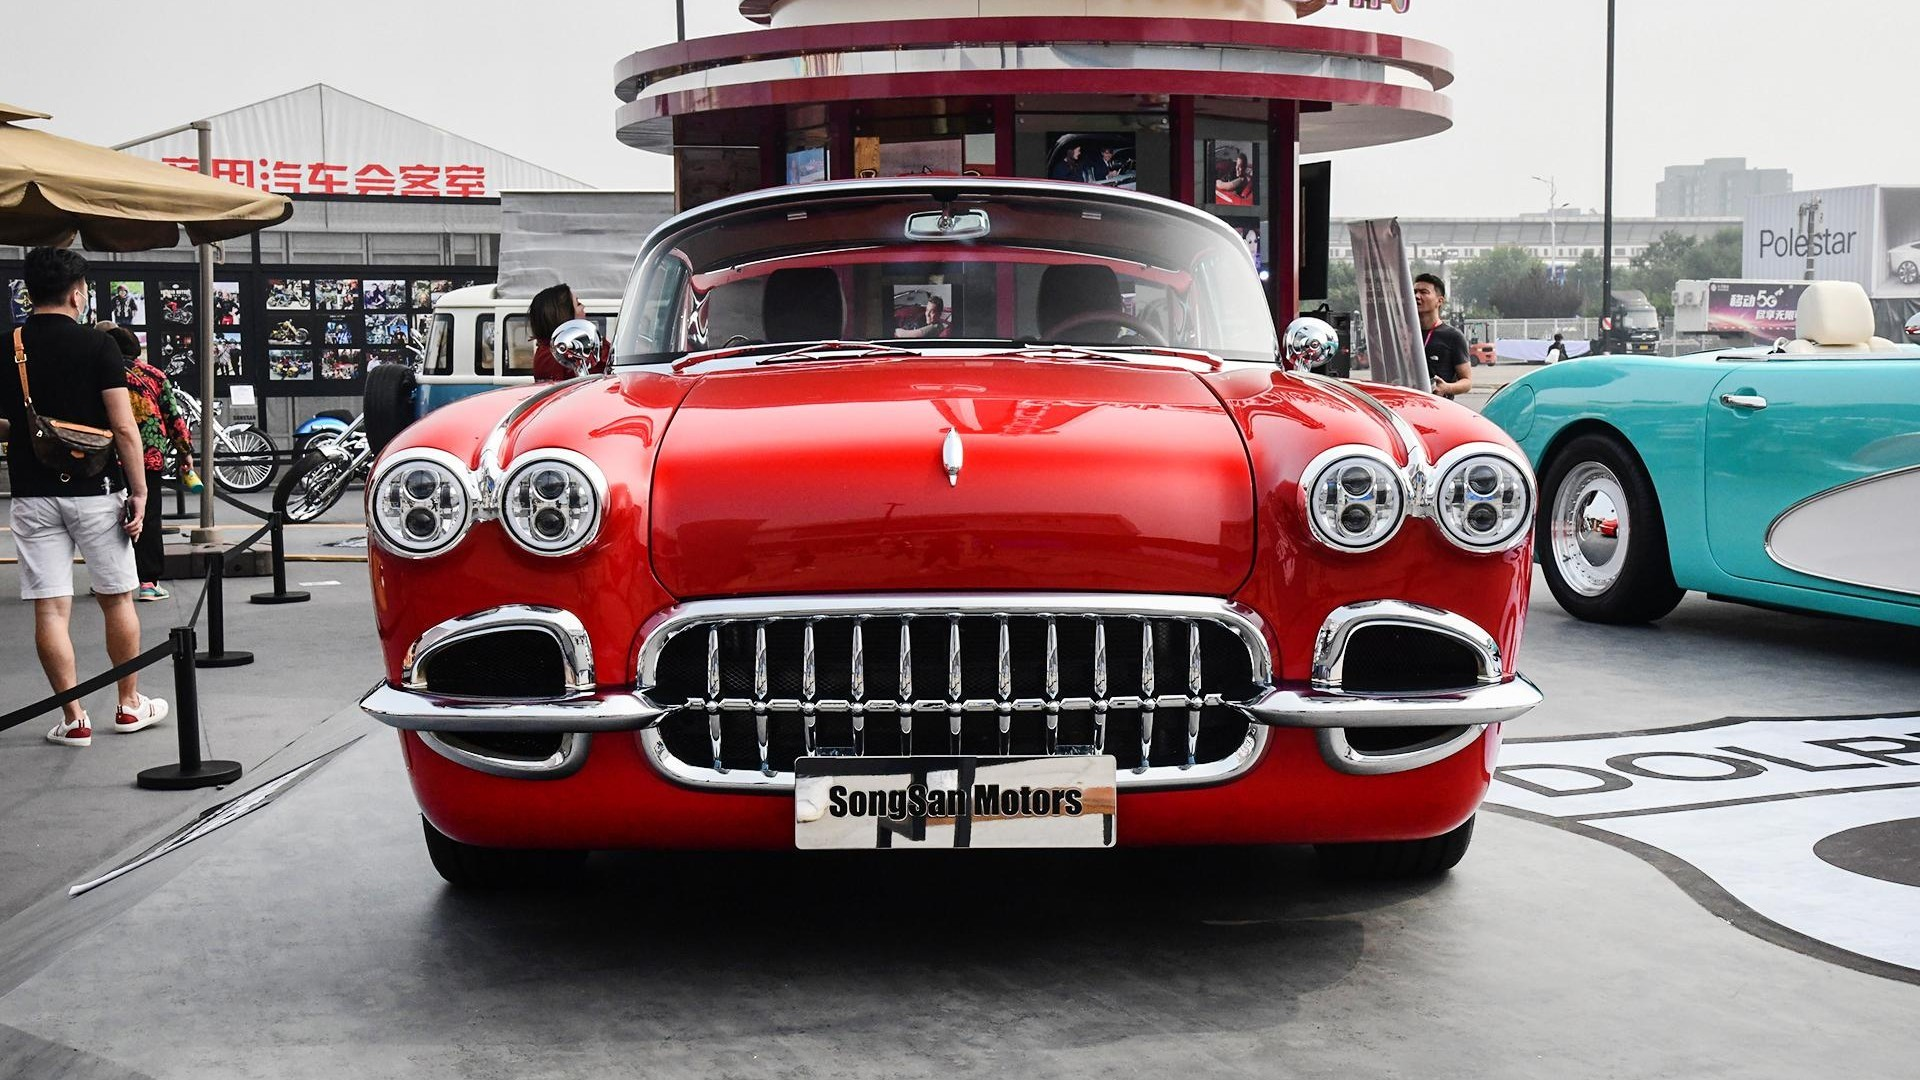 Automaker Songsan Motors has brought quite a few unlicensed replicas of Western cars to the Auto China 2020 show, but the SS Dolphin stands alone in the fact that it will be getting a U.S. release.